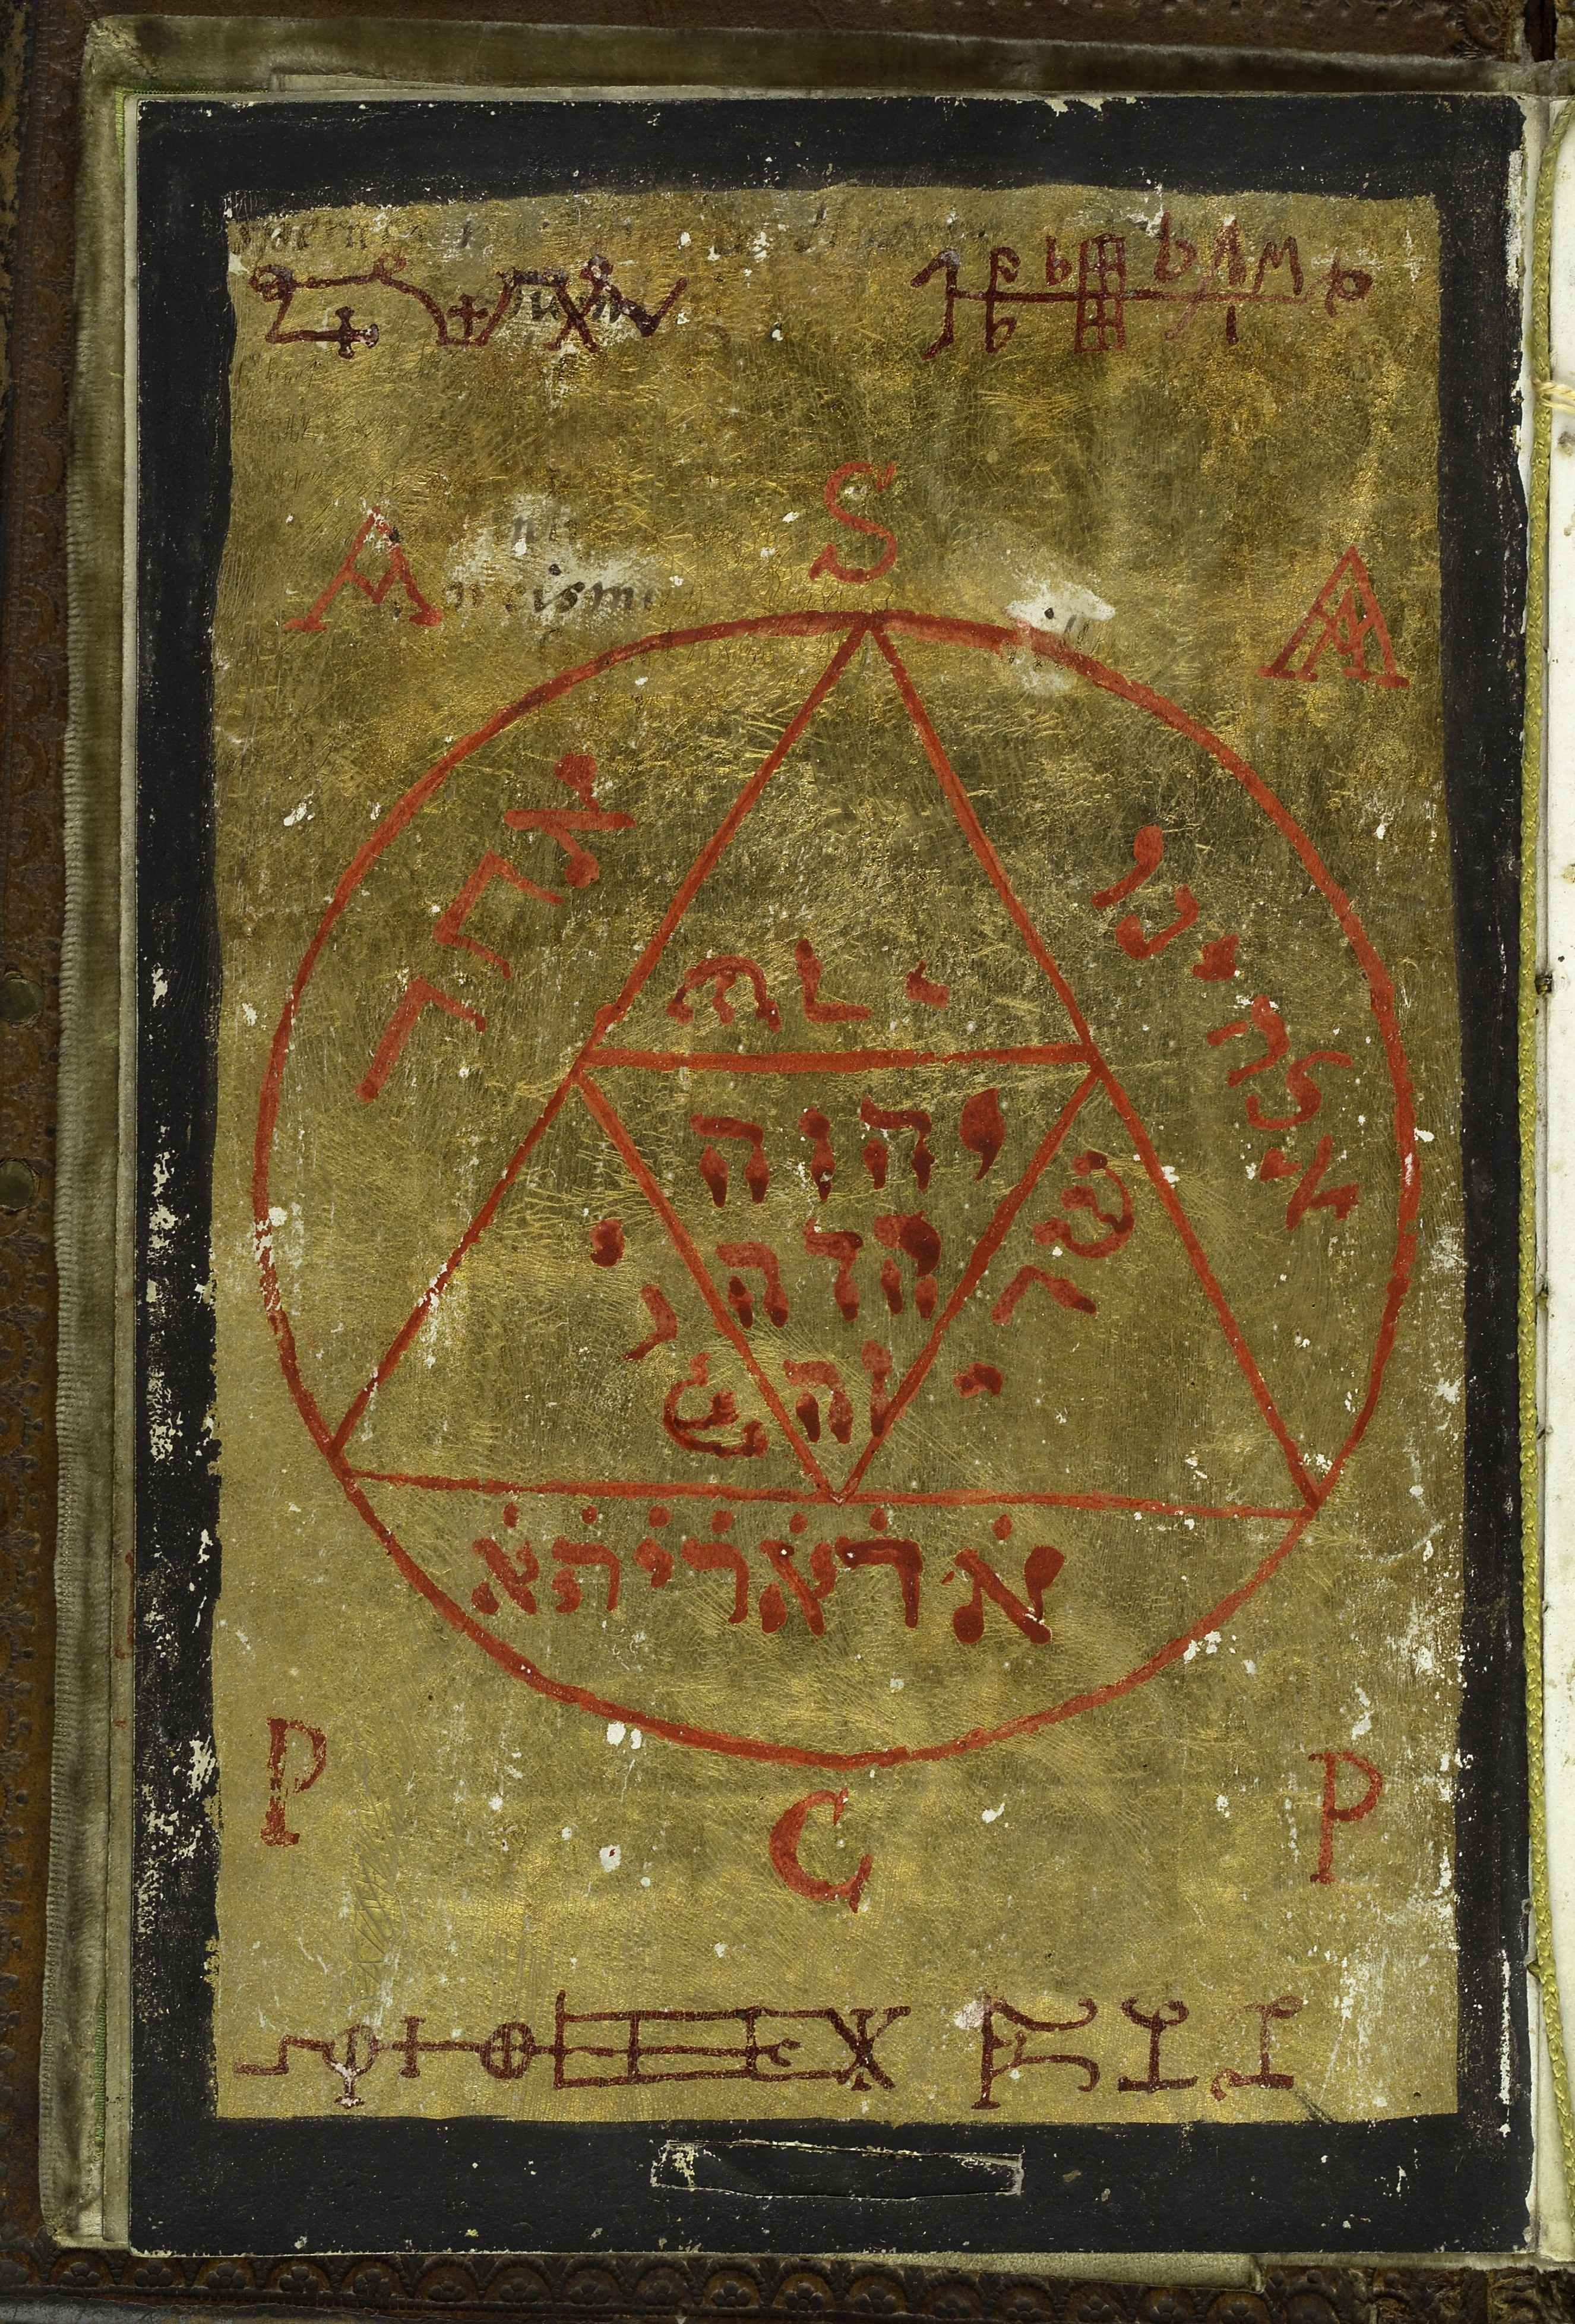 Illustration showing a Gold seal - five trianges inside a circle with alchemical/magical symbols inside and outside the shape. From Cyprianus, 18th century. Cyprianus is also known as the Black Book, and is the textbook of the Black School at Wittenburg, the book from which a witch or sorceror gets his spells. The Black School at Wittenburg was purportedly a place in Germany where one went to learn the black arts.